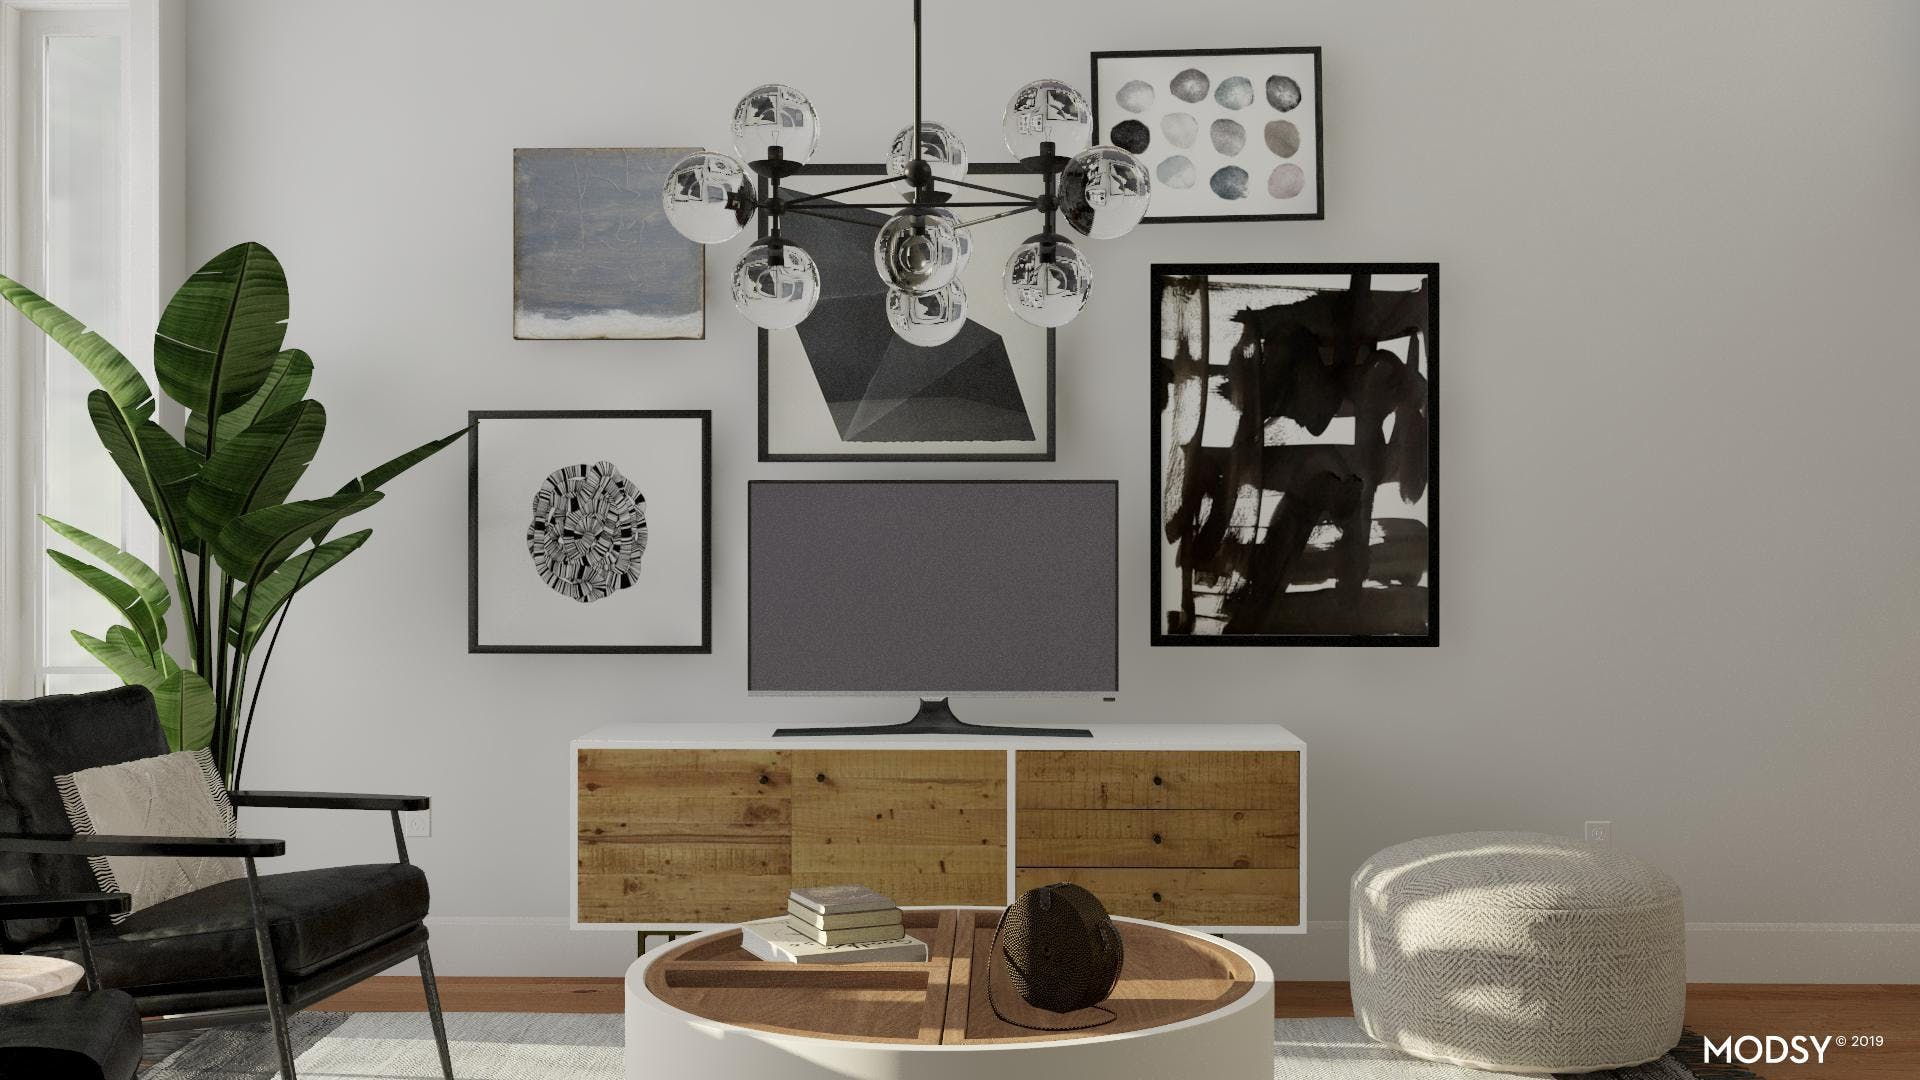 Gallery Style Television Viewing